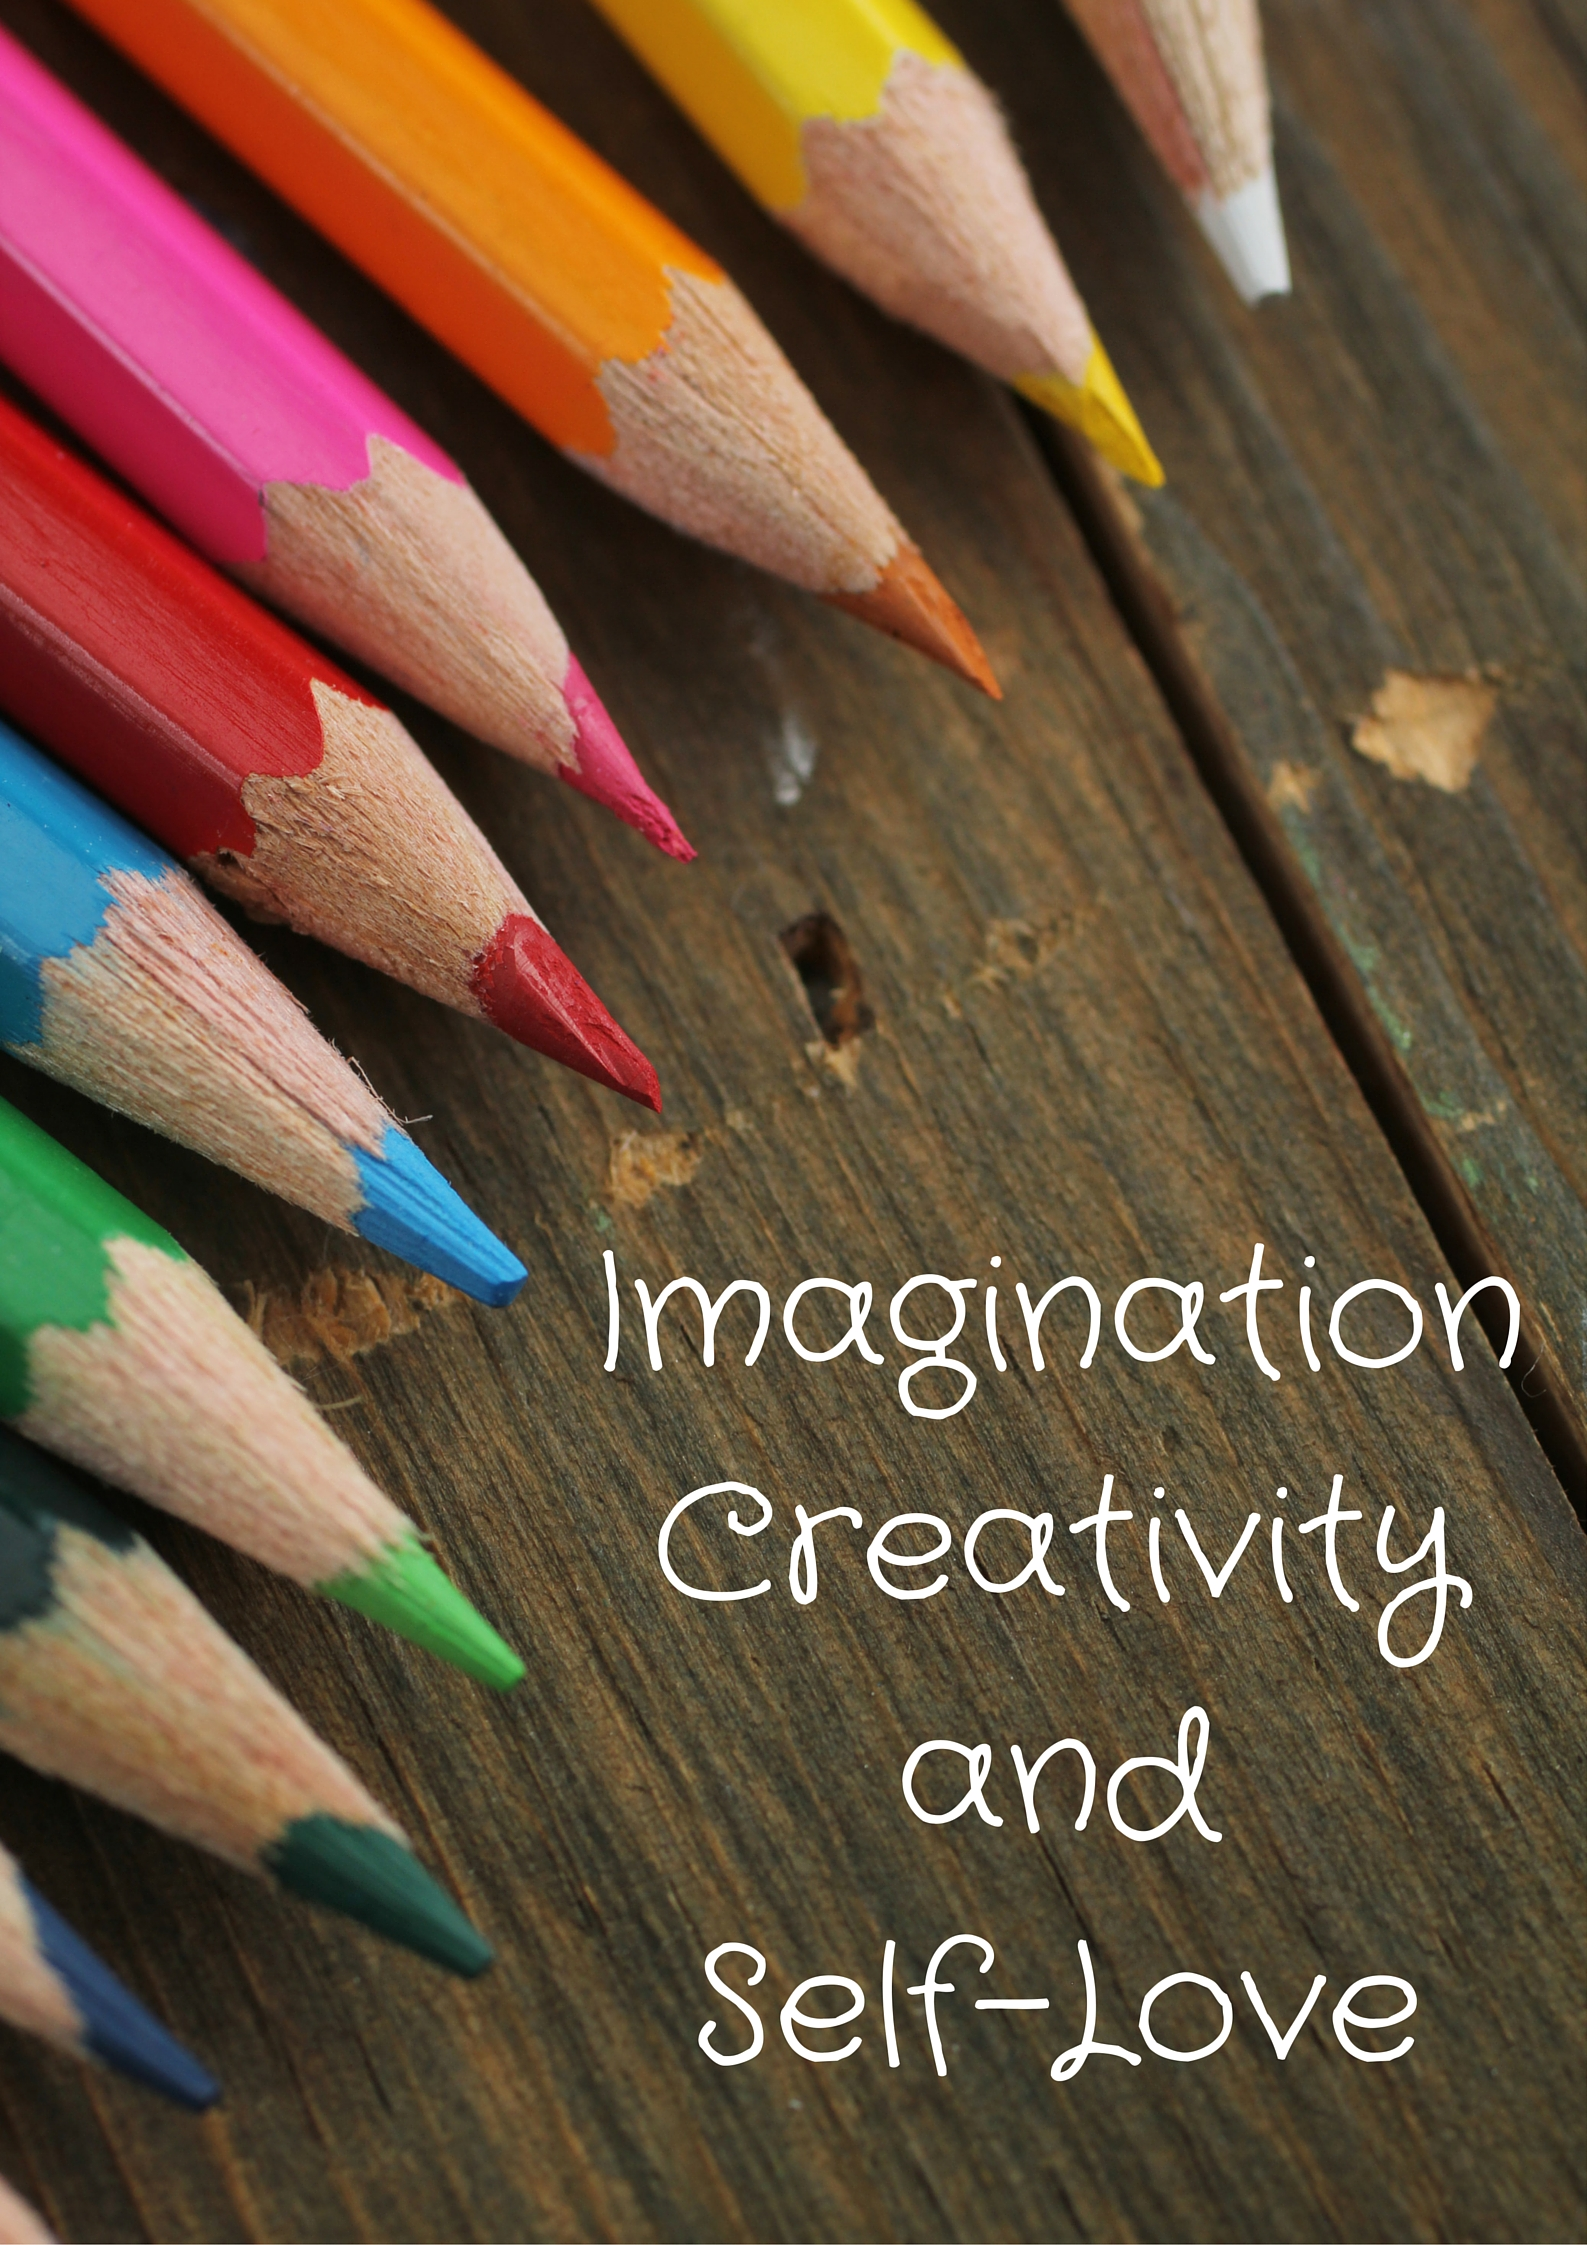 Imagination, Creativity, and Self-Love